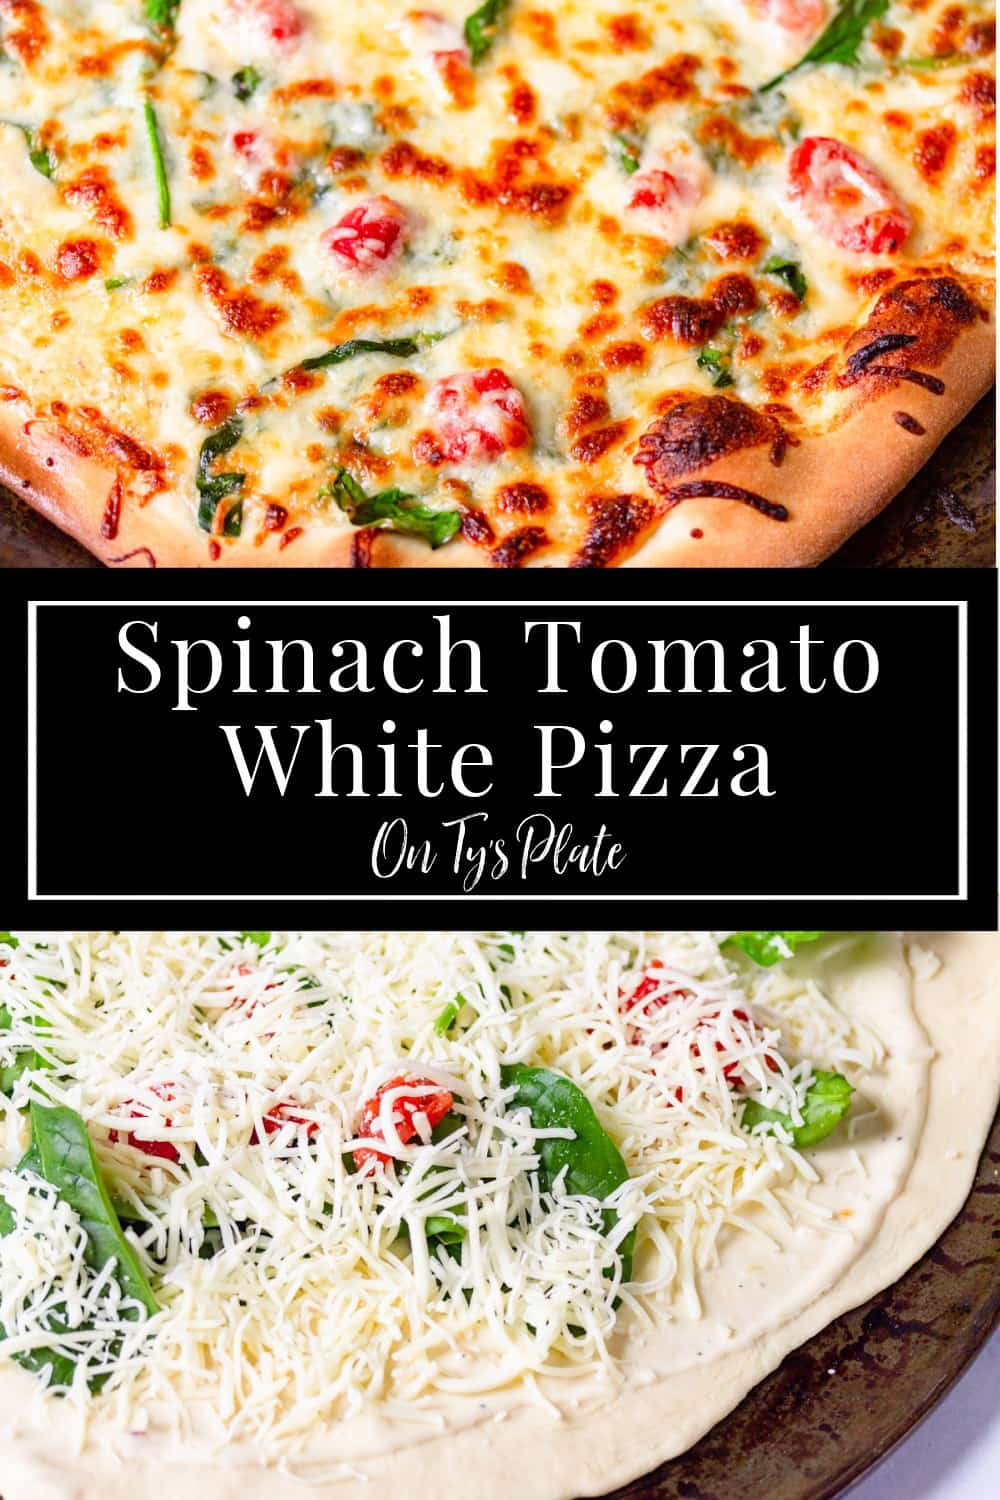 Spinach Tomato White Pizza